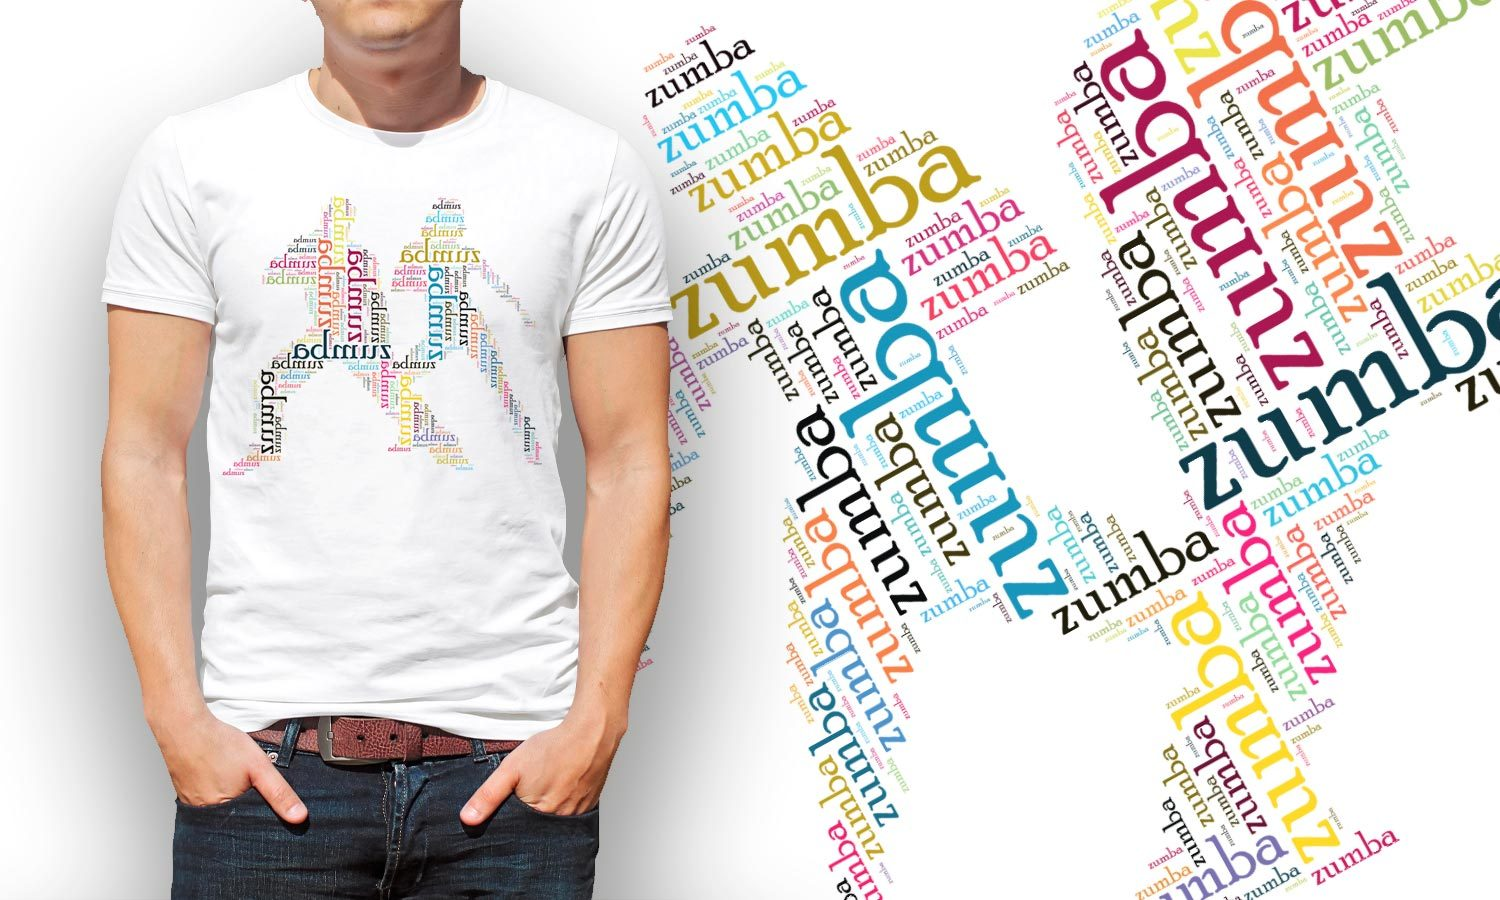 Zumba - Printed T-Shirt for Men, Women and Kids - TS011